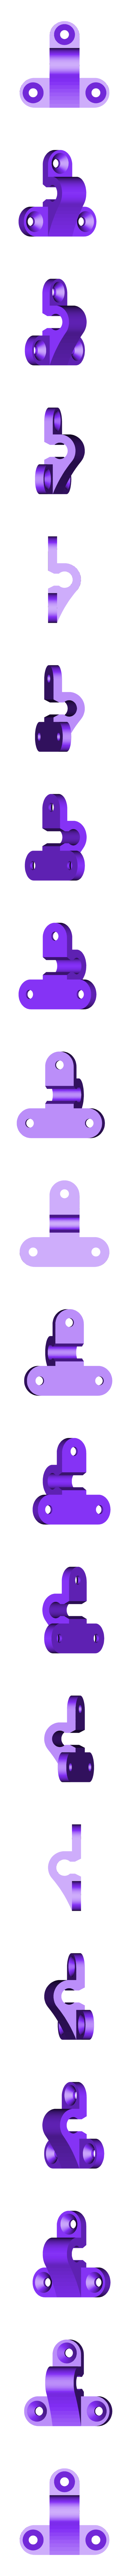 up2.stl Download free STL file Classic style hasp for boxes model 3 • Object to 3D print, raffosan